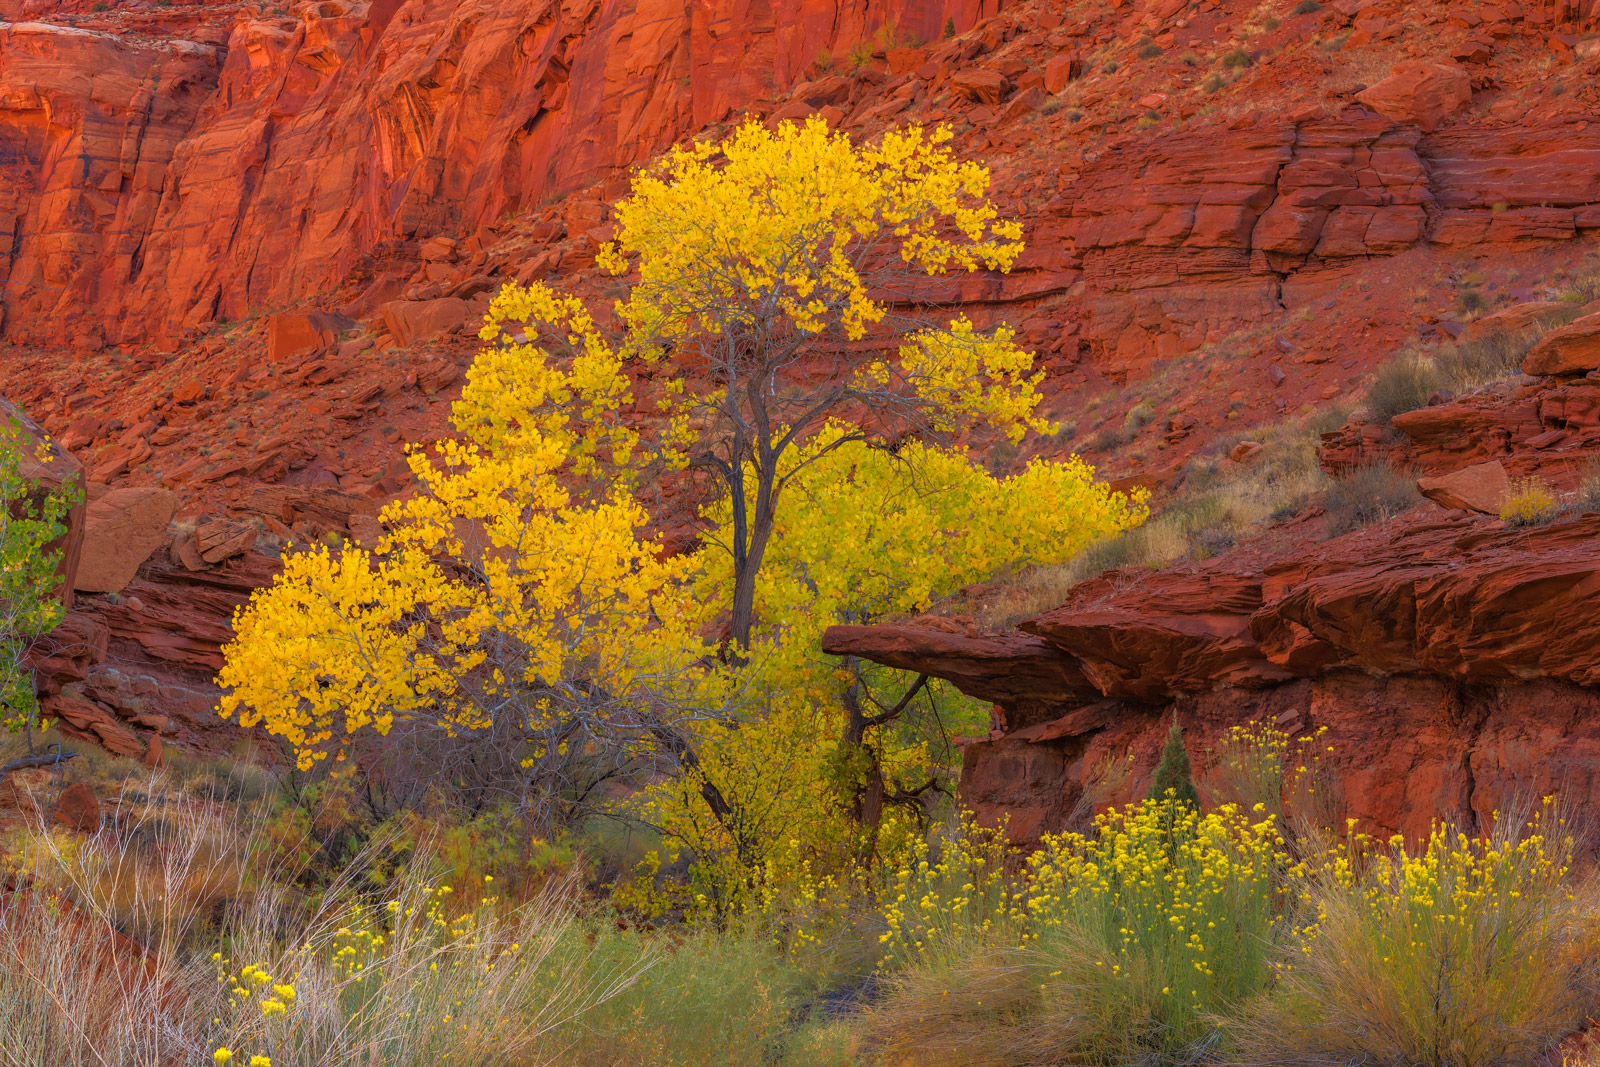 Utah, Hite, Canyons, Cottonwood, Tree, Red Rock, Fall Color, limited edition, photograph, fine art, landscape, photo